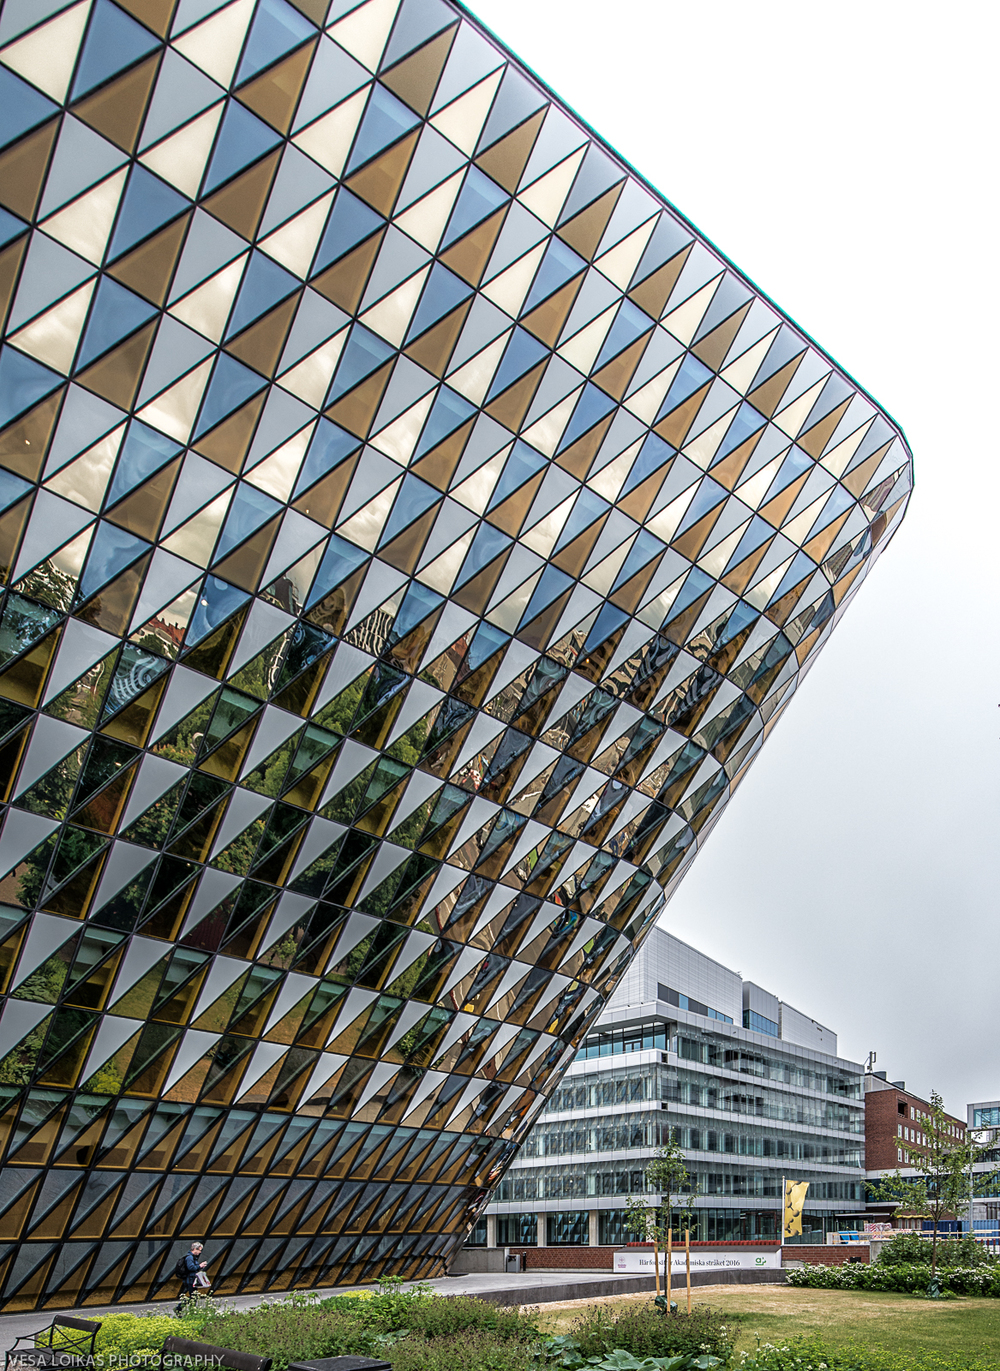 Leaning In - Karolinska Institutet New Lecture Hall | A university auditorium in a Stockholm suburb with a patterned glass facade that twists and leans over the adjacent street.